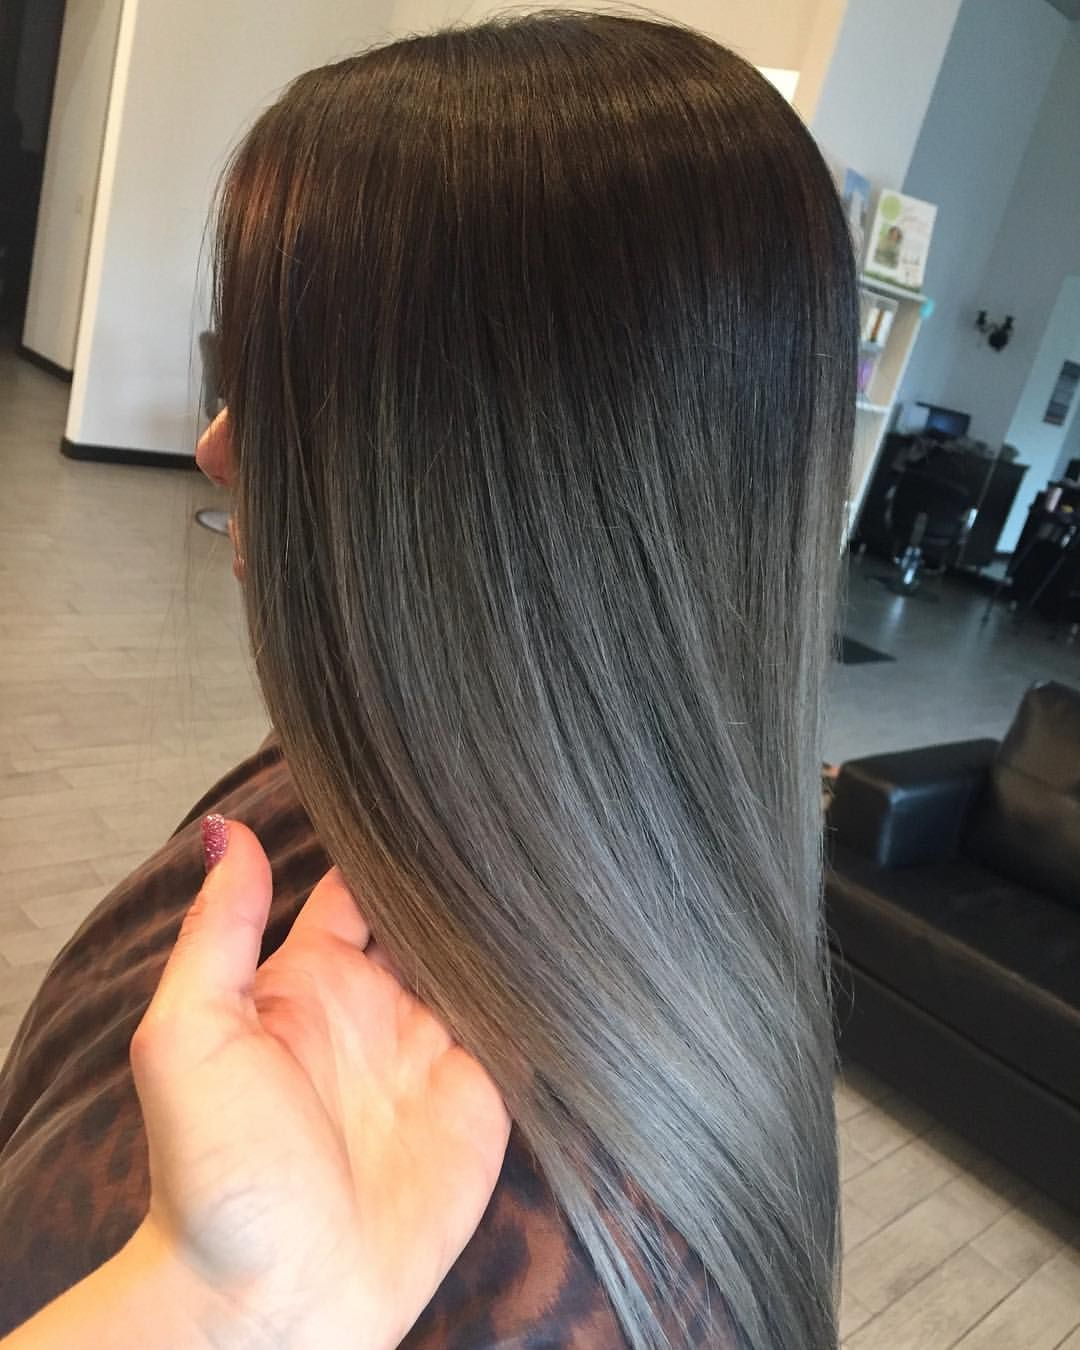 Black Silver Gray Color Ash Hair Rooted Silver Gray Hair Color Melt Hair By Caitlin Caitlinrocksm Color Melting Hair Black Hair Dye Black Hair Balayage